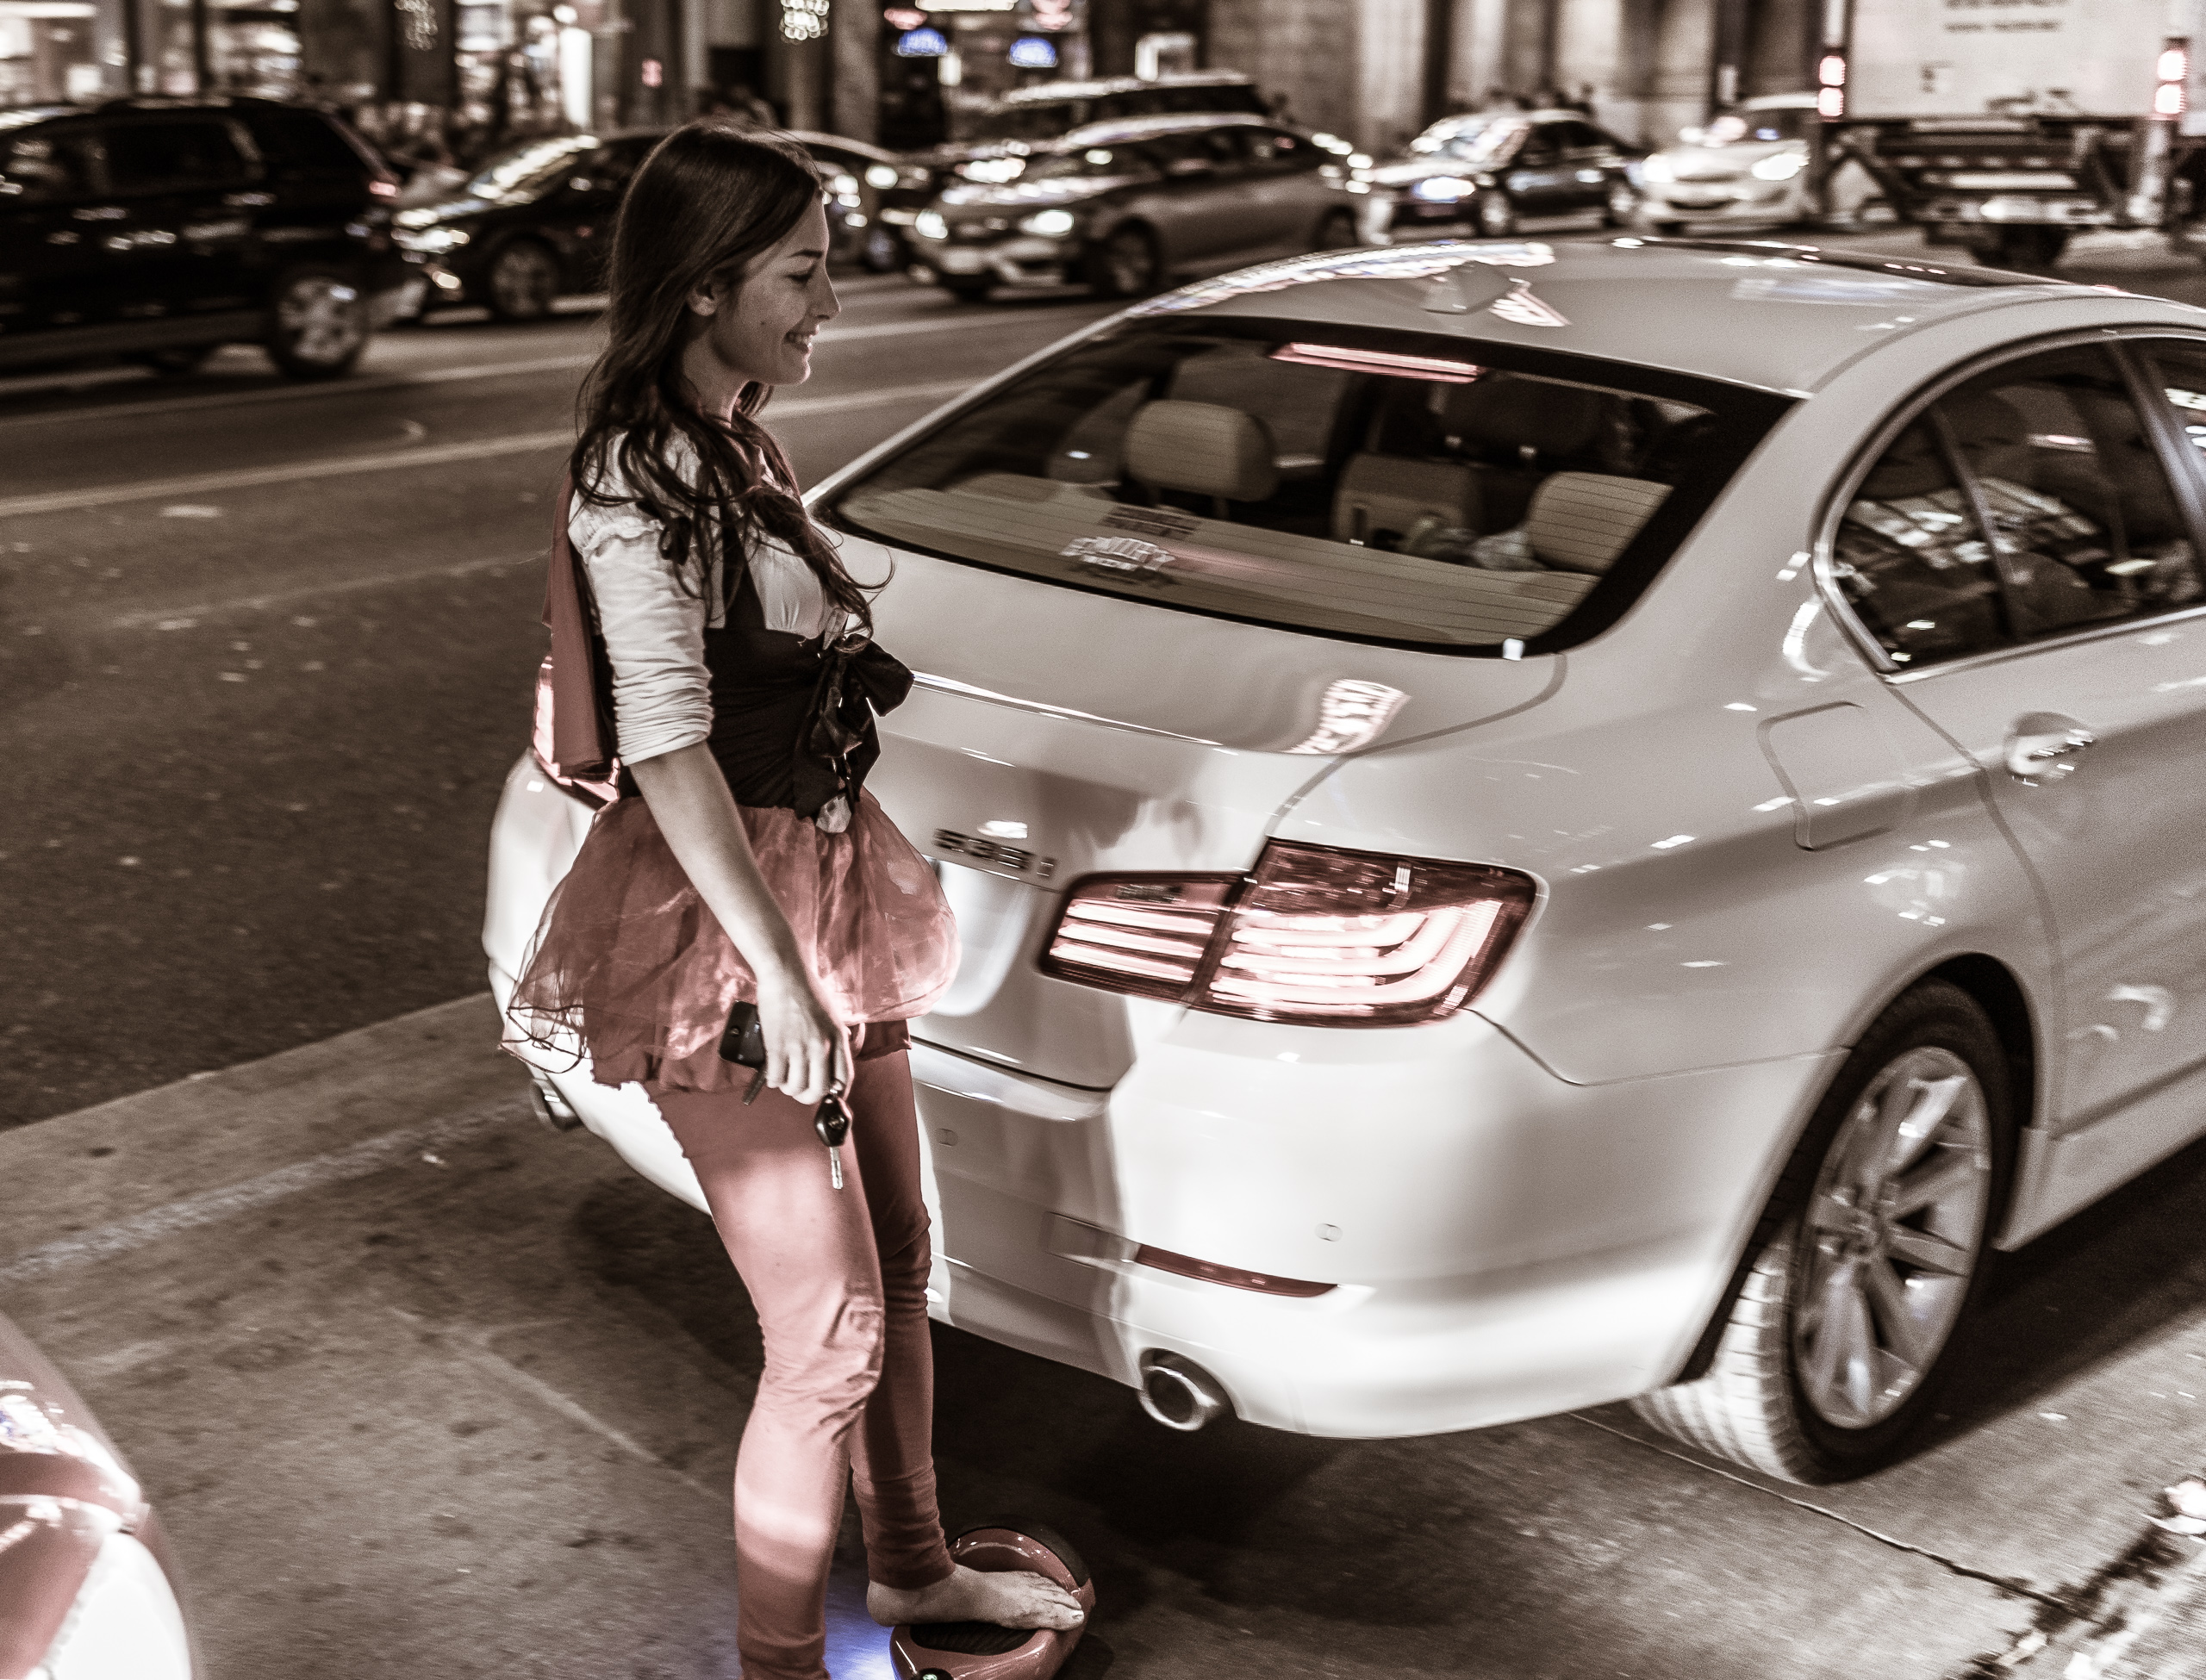 a woman on a hoverboard moves between cars on Hollywood Blvd in Los Angeles, California